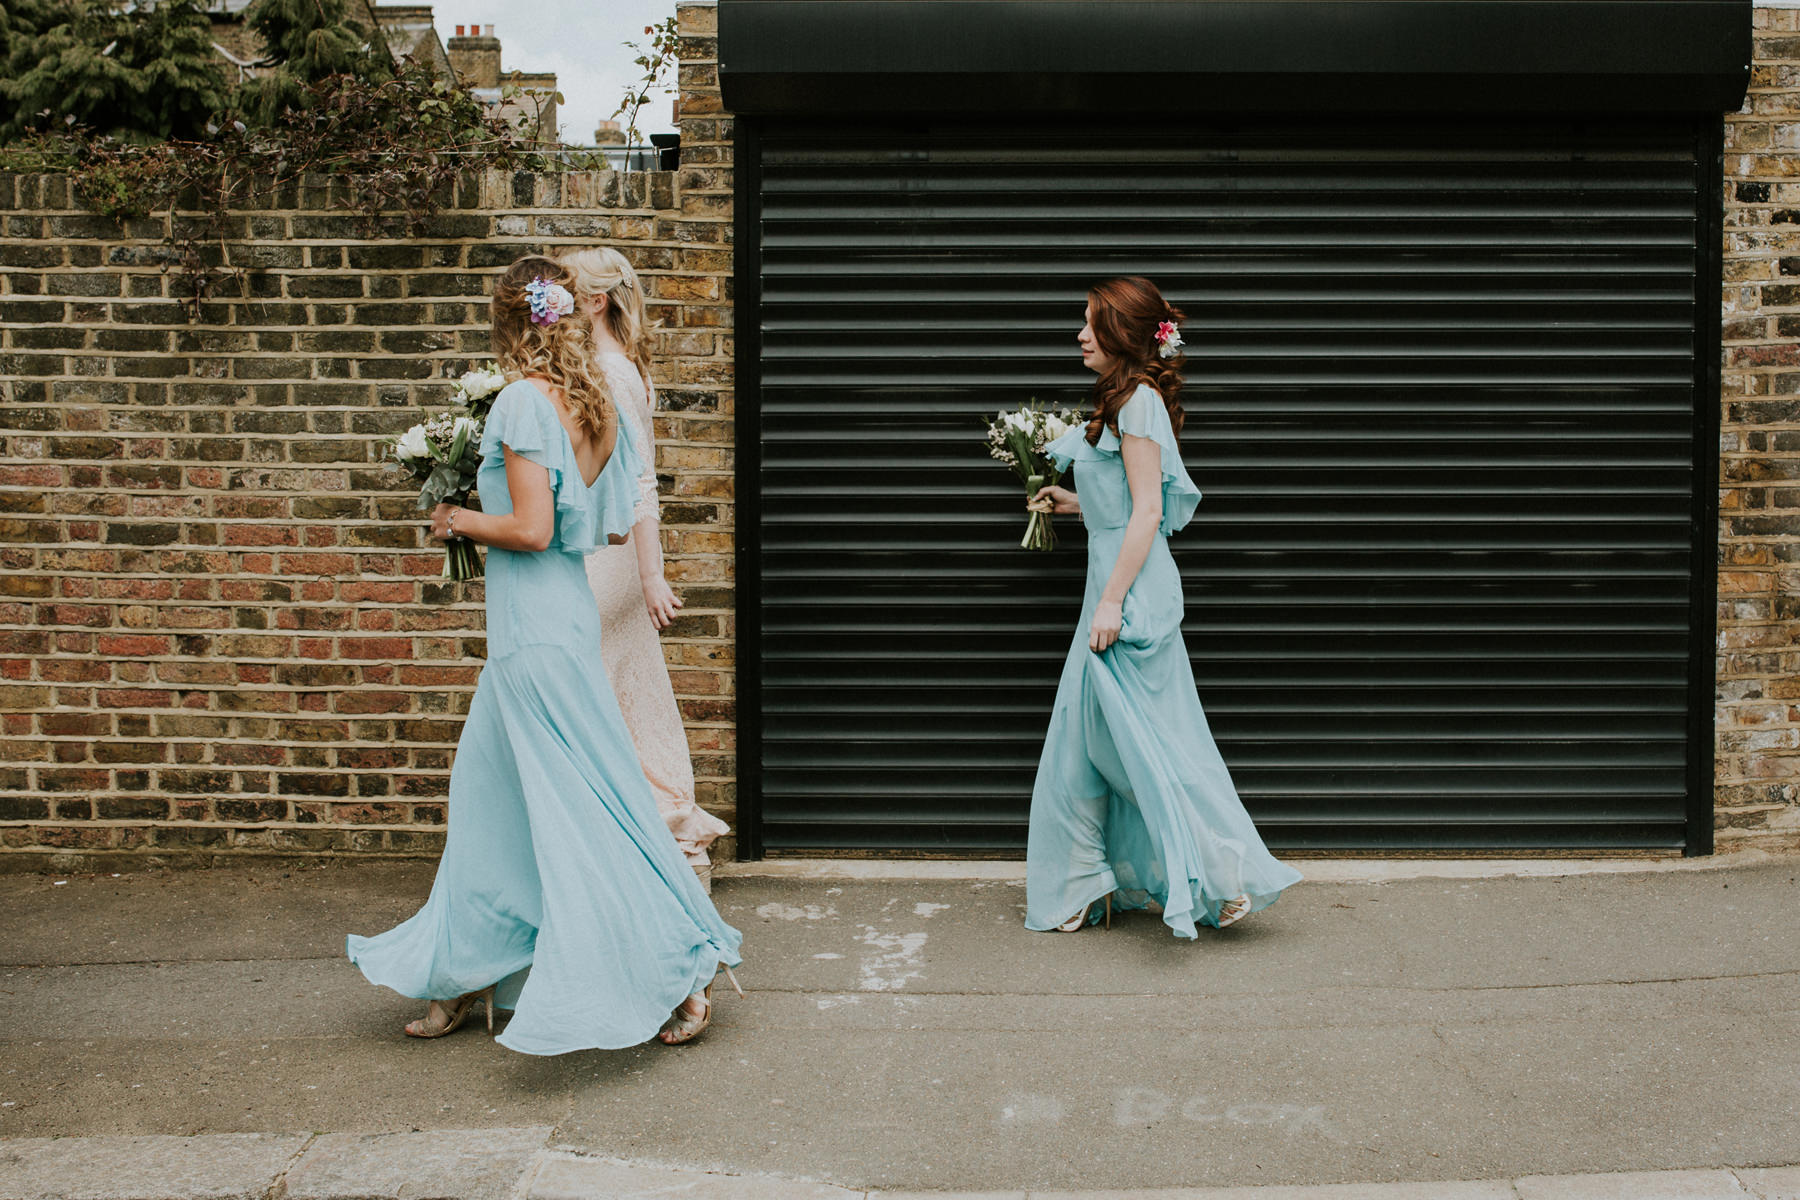 LD-131-London-bridesmaids-blue-dresses-bride-walking-to-wedding-ceremony.jpg